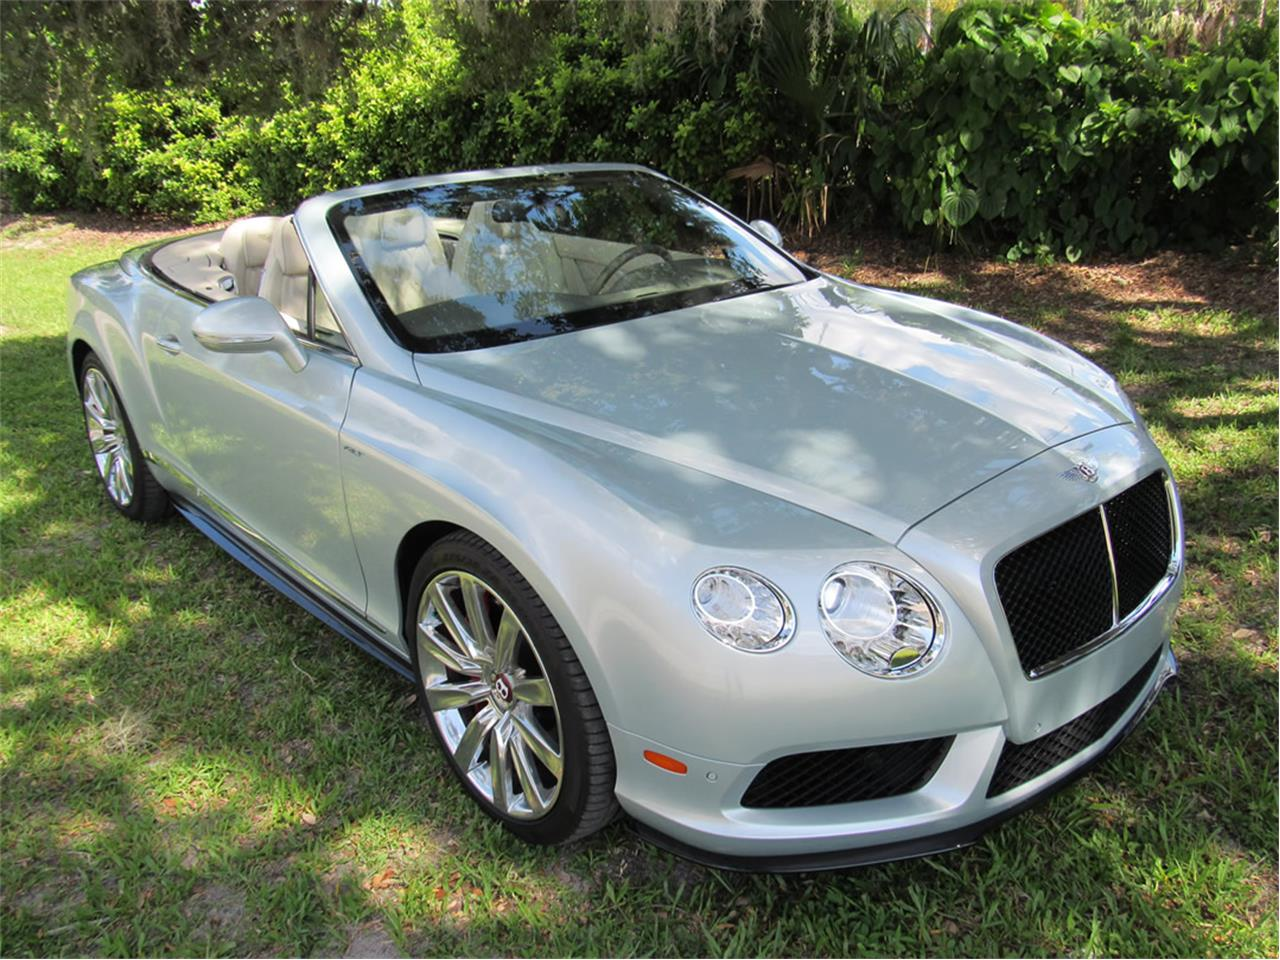 bentley continental gtc replica for sale - wroc awski informator internetowy